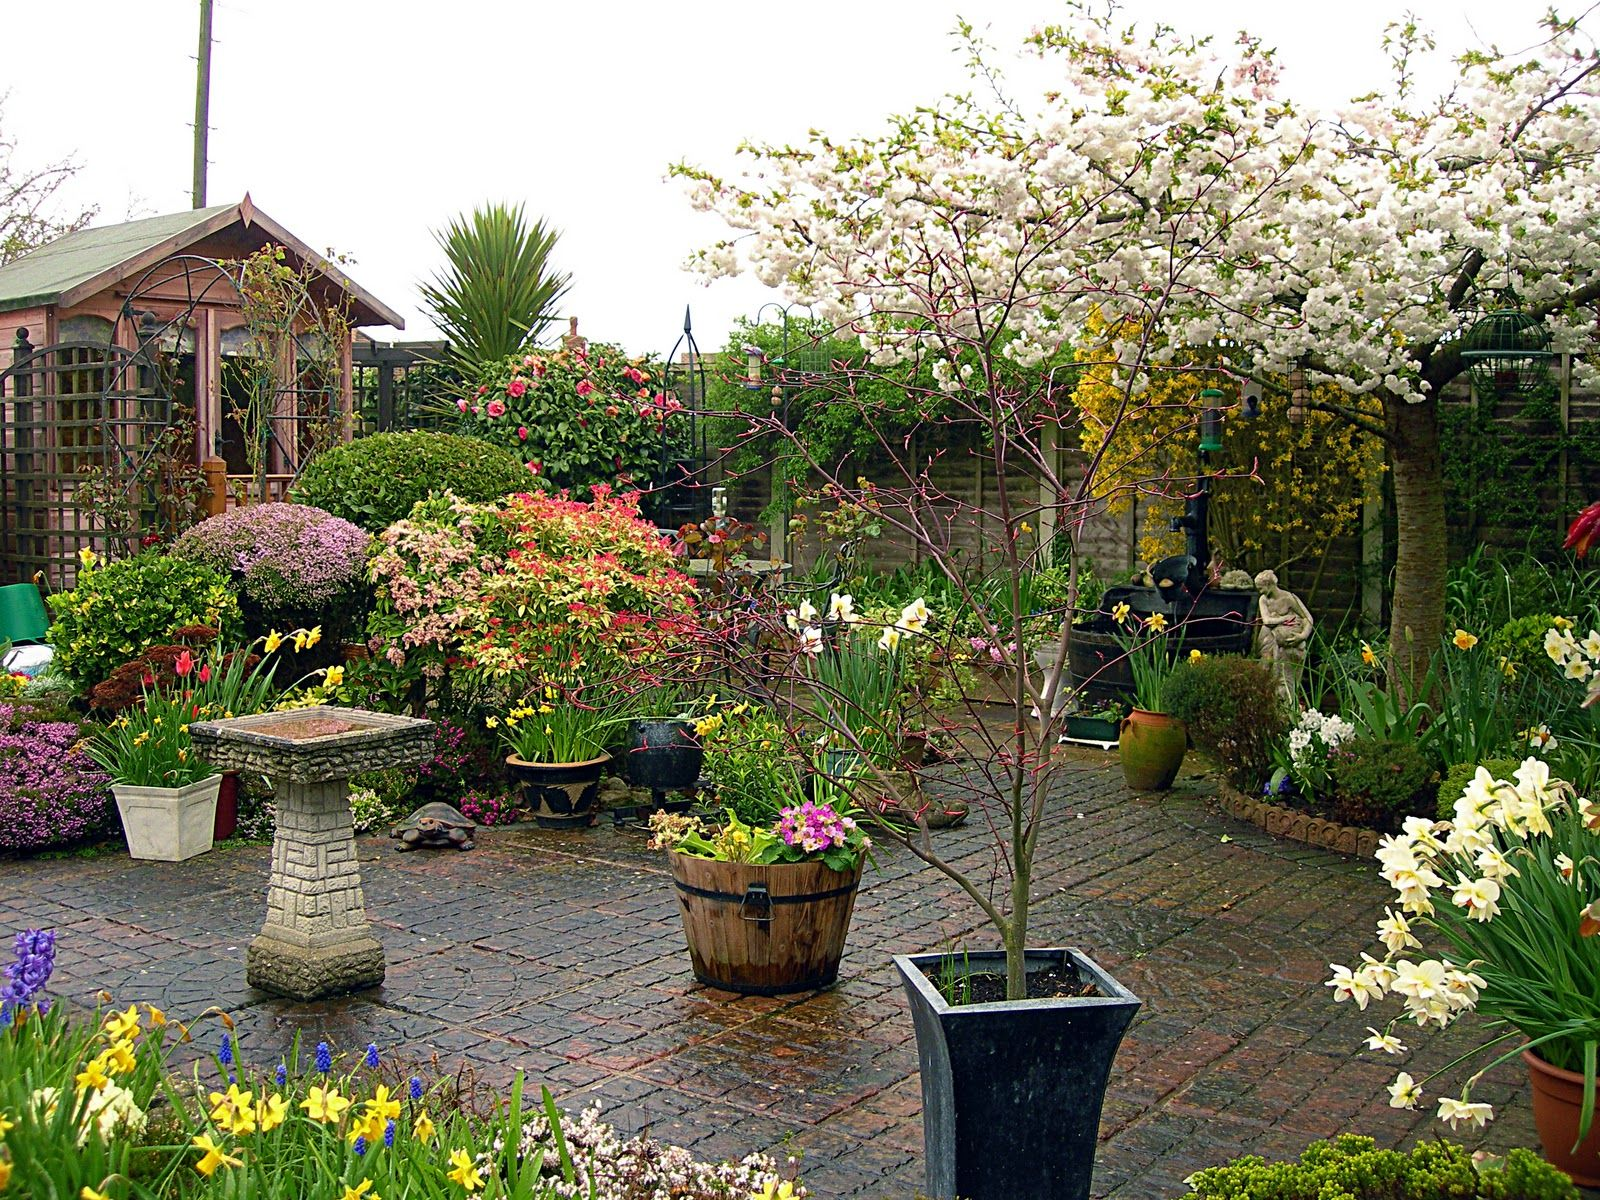 Beautiful Home Gardens | back home to relax in my beautiful home and garden  with my